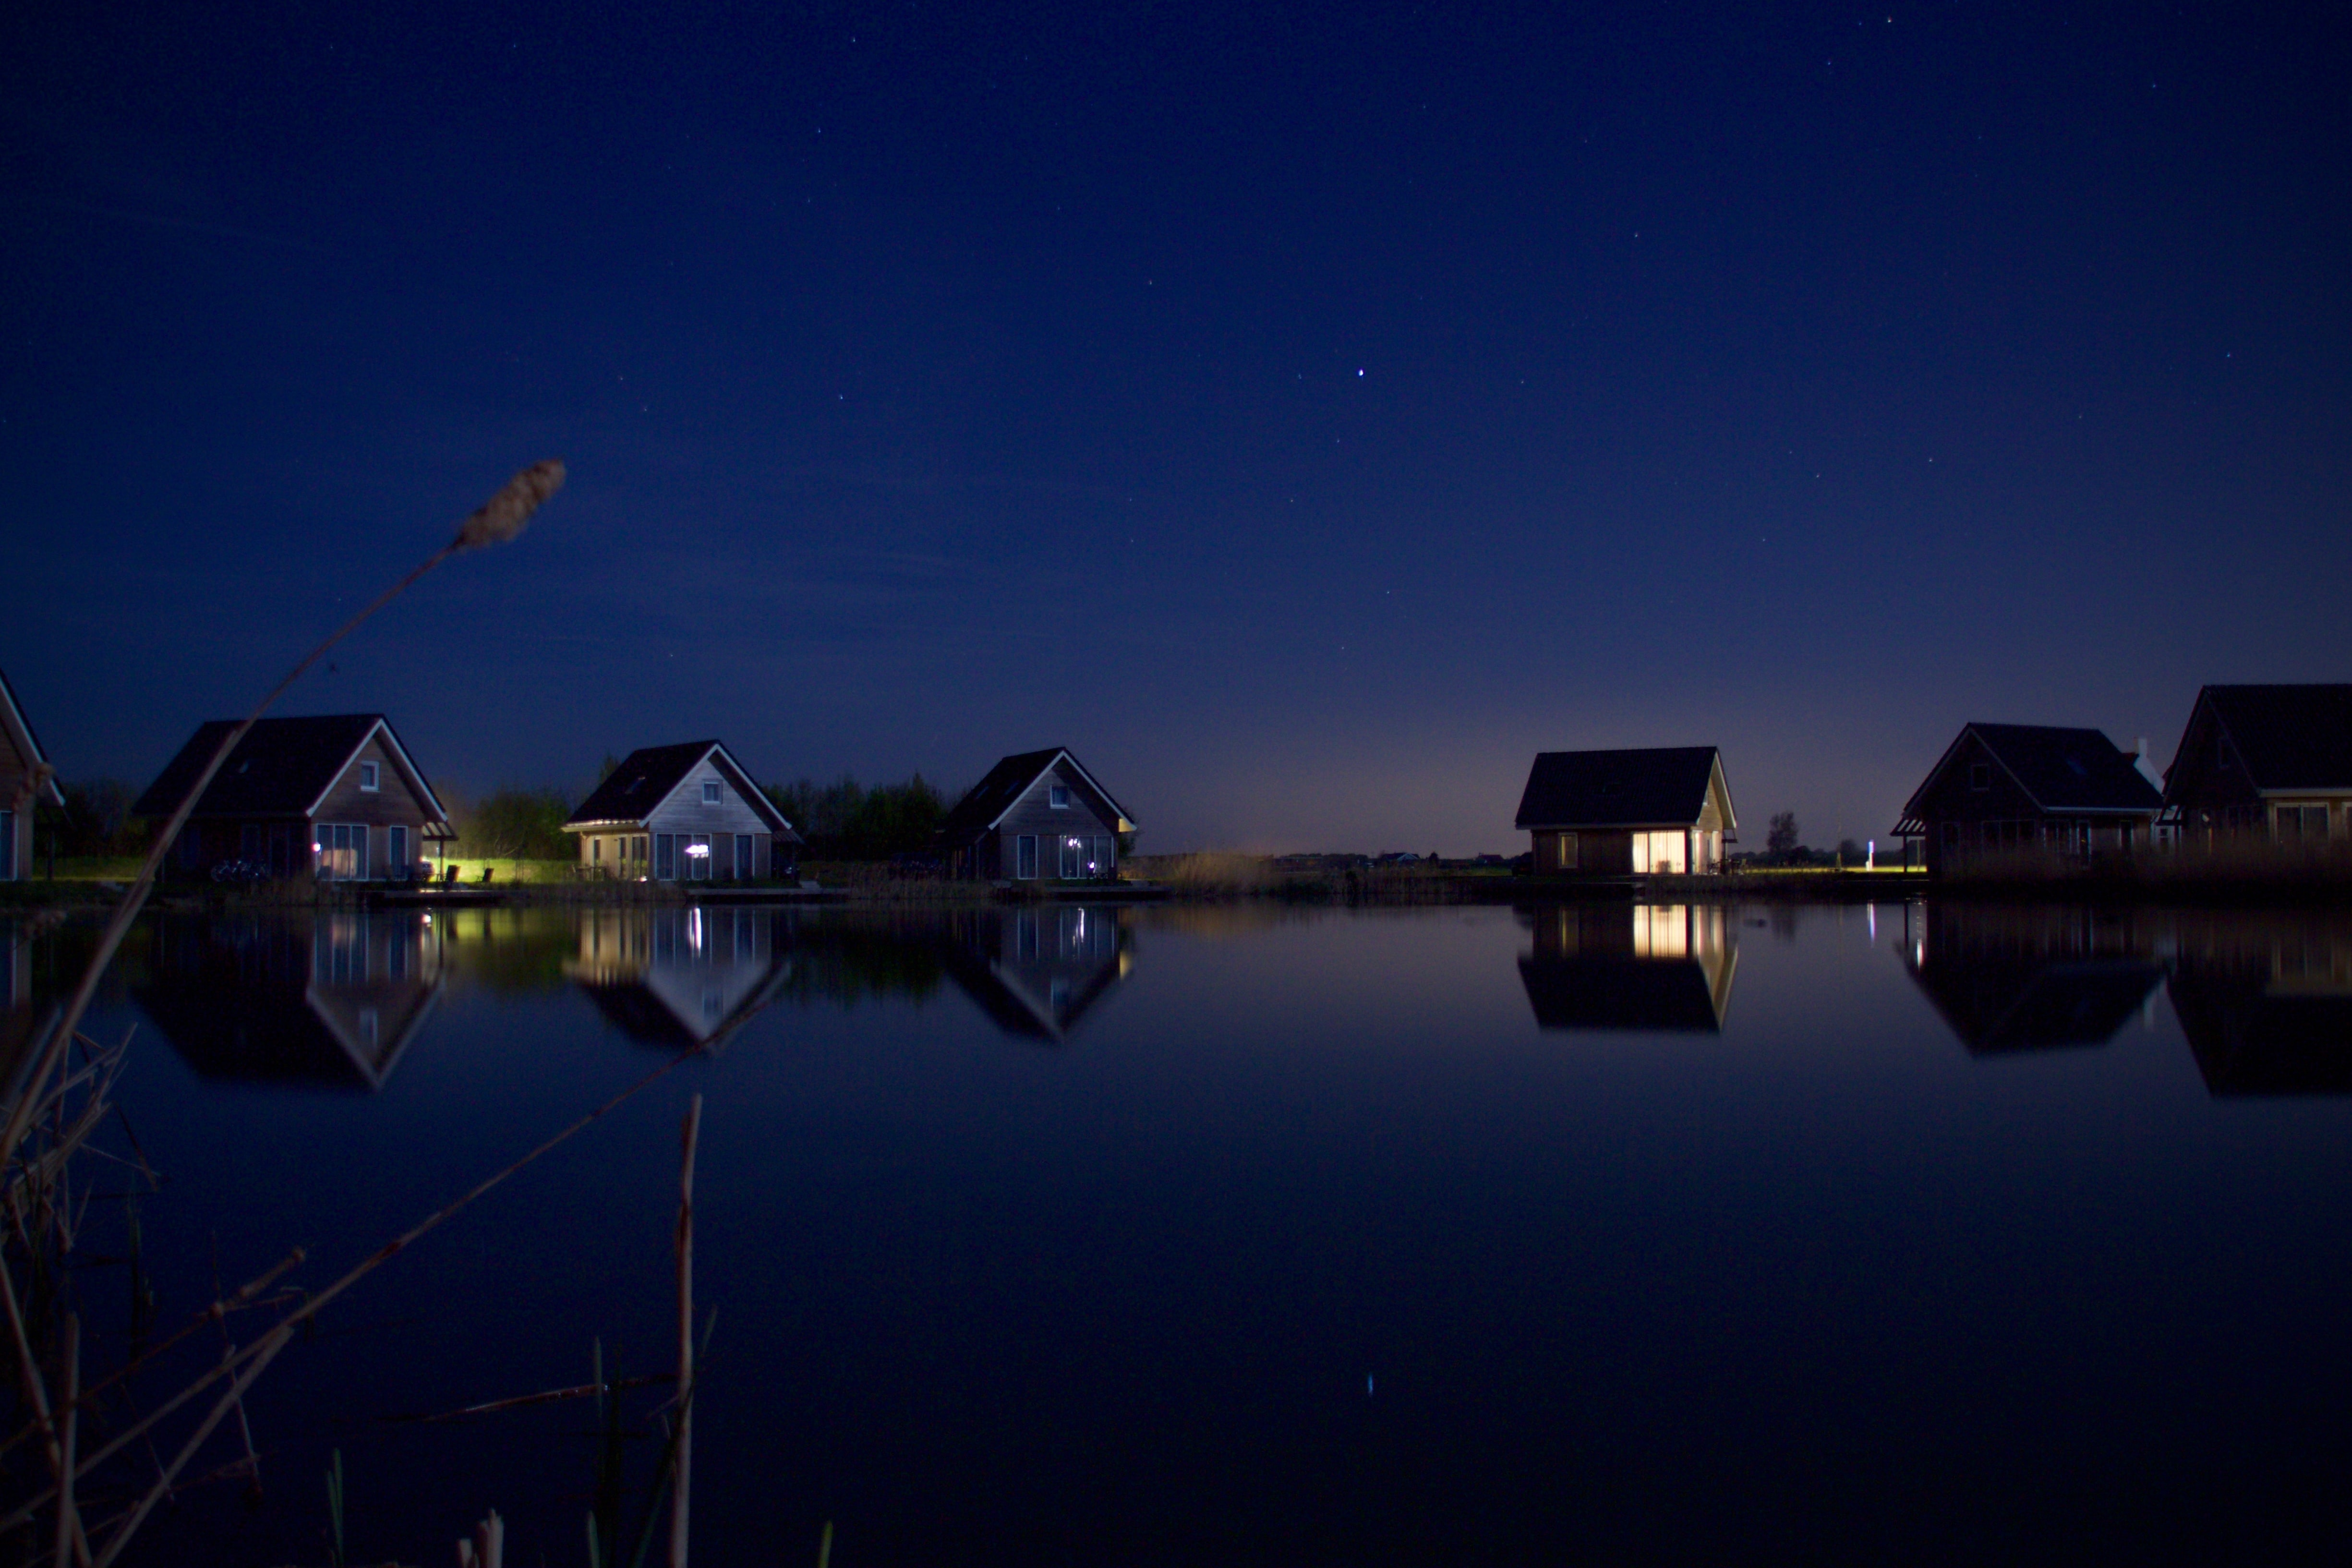 calm body of water near six houses and trees at night